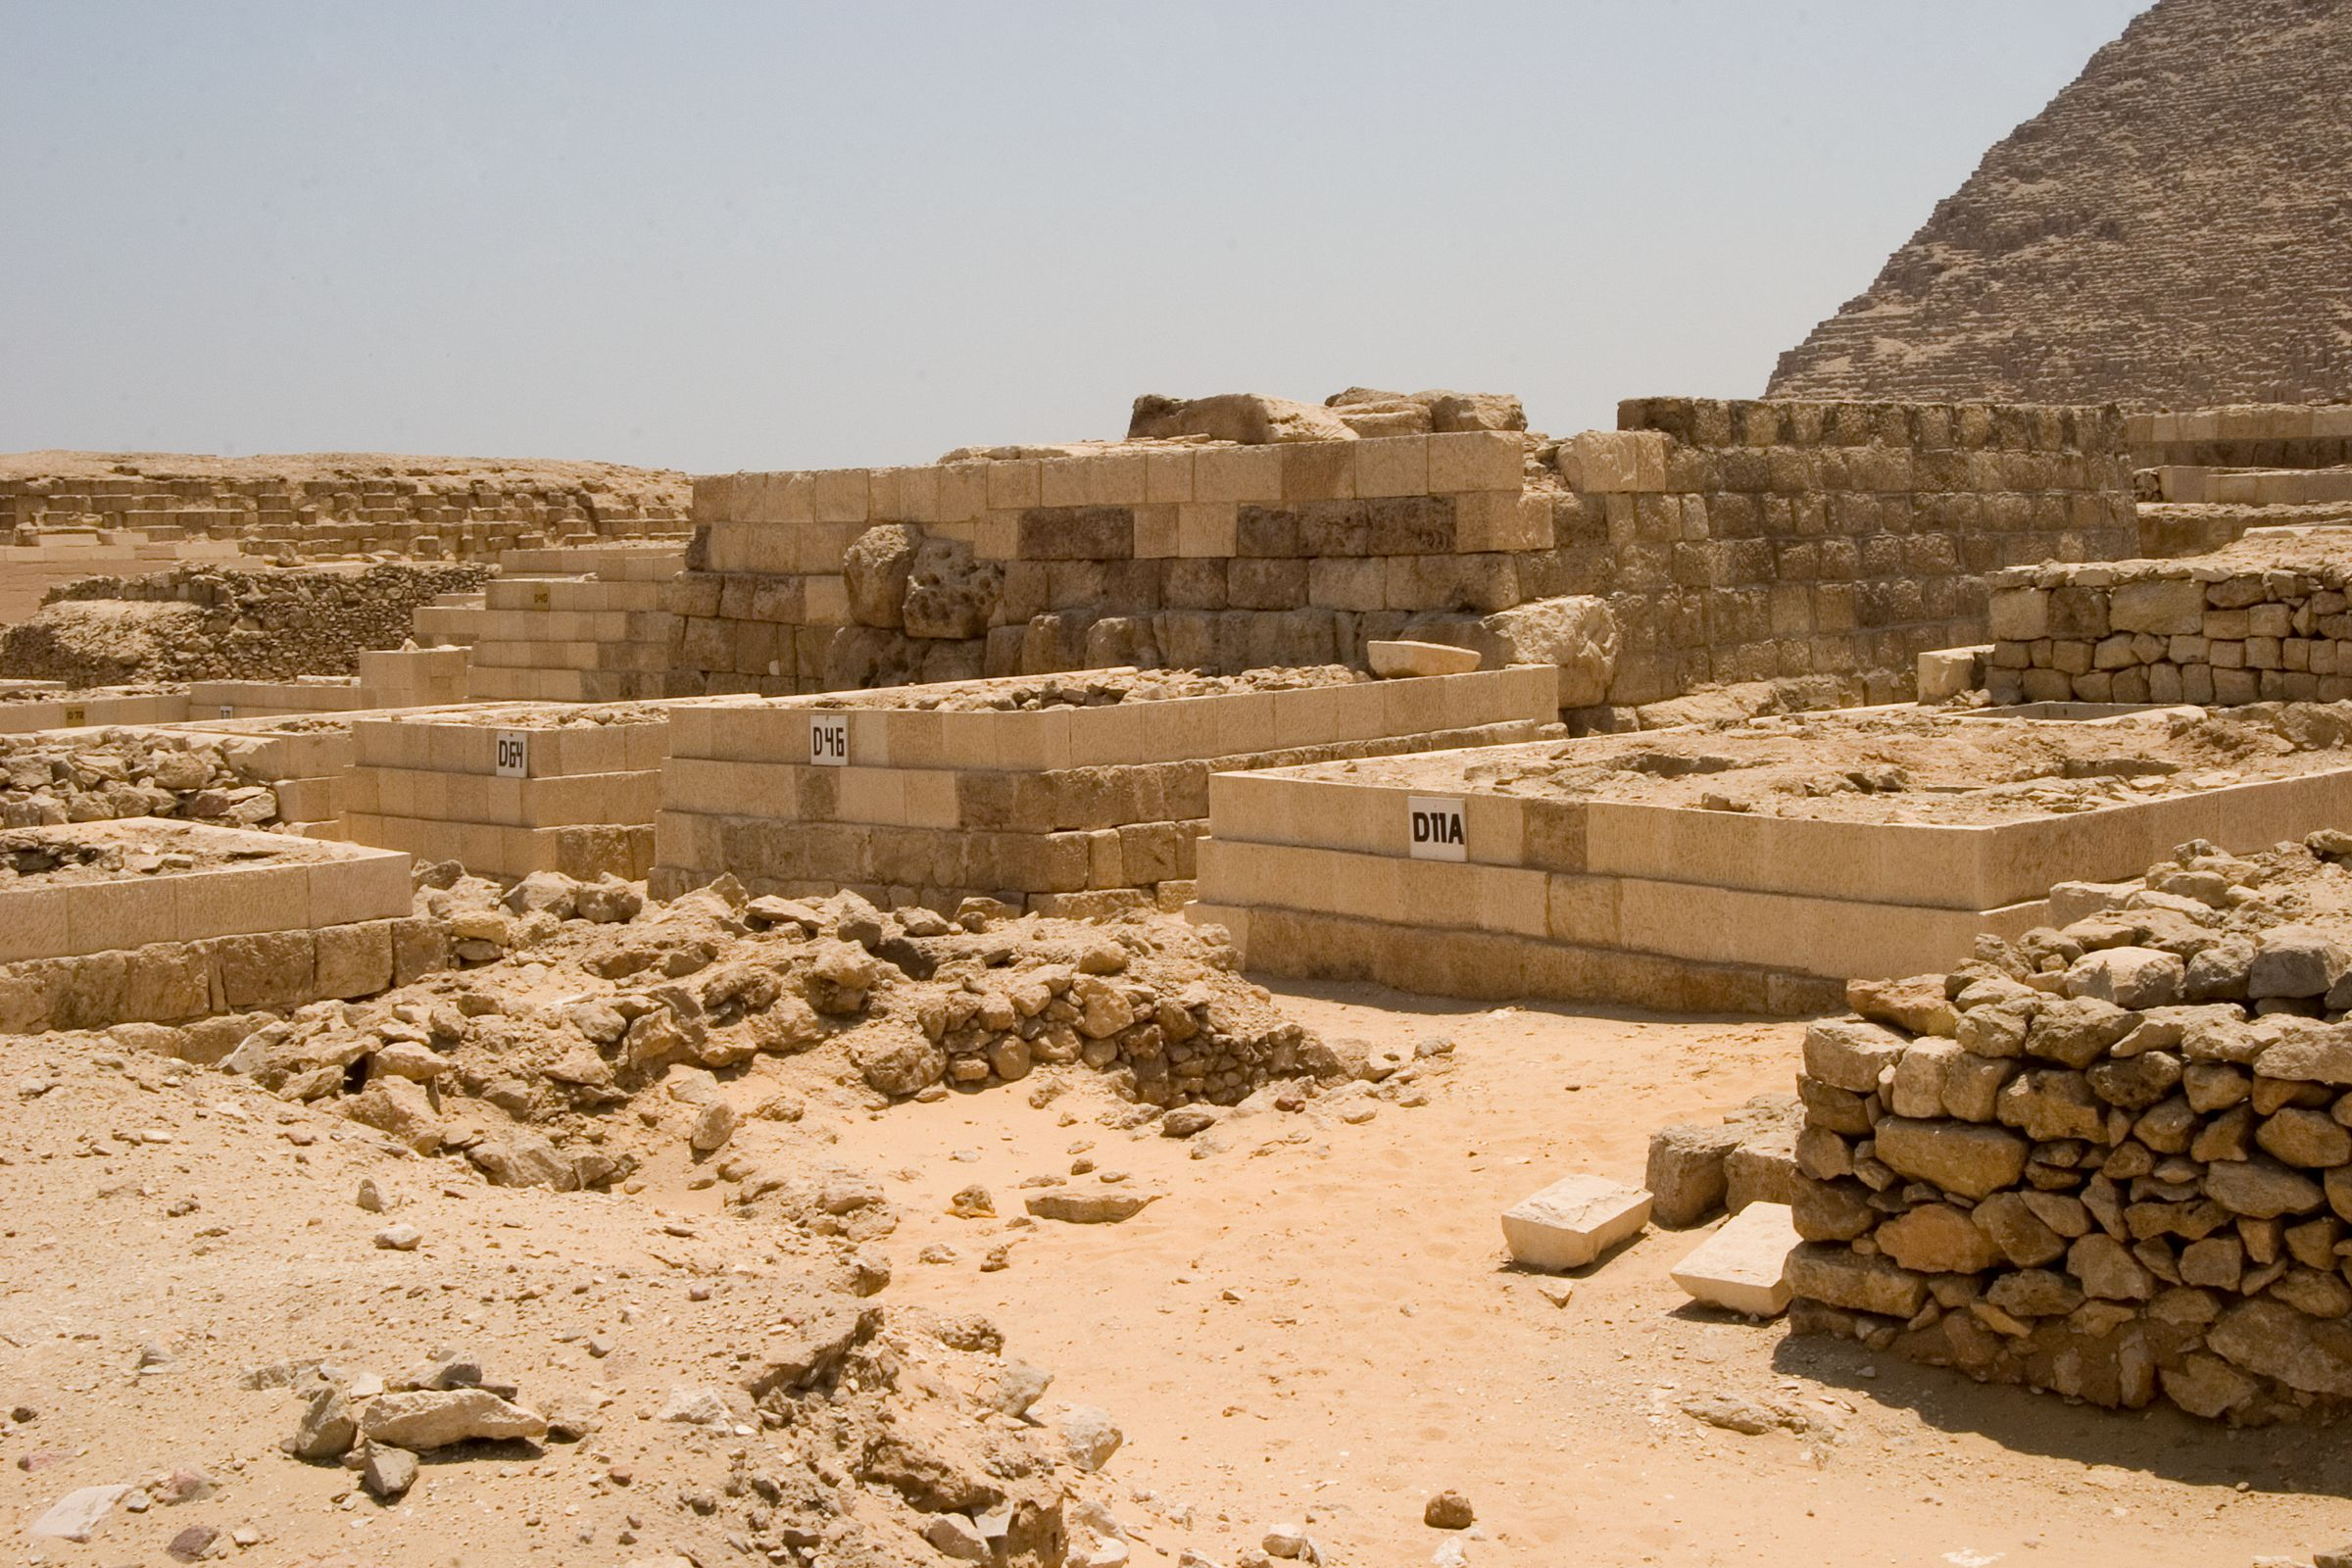 Western Cemetery: Site: Giza; View: D 64, D 46, D 11A